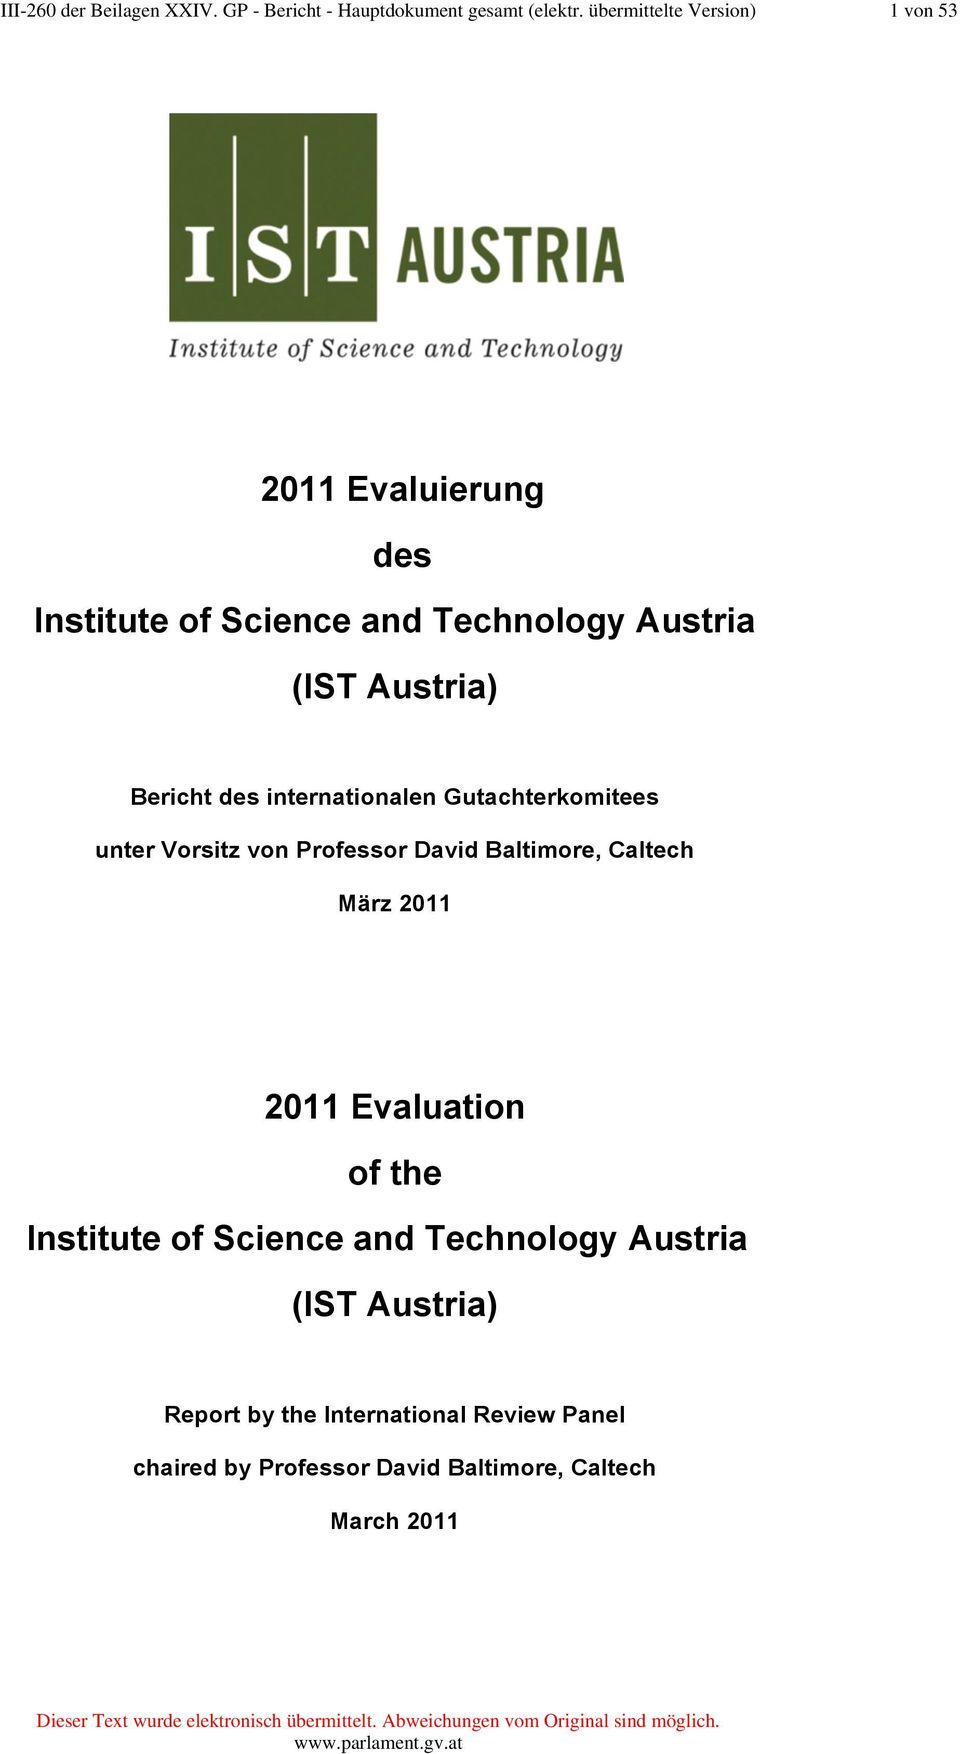 des internationalen Gutachterkomitees unter Vorsitz von Professor David Baltimore, Caltech März 2011 2011 Evaluation